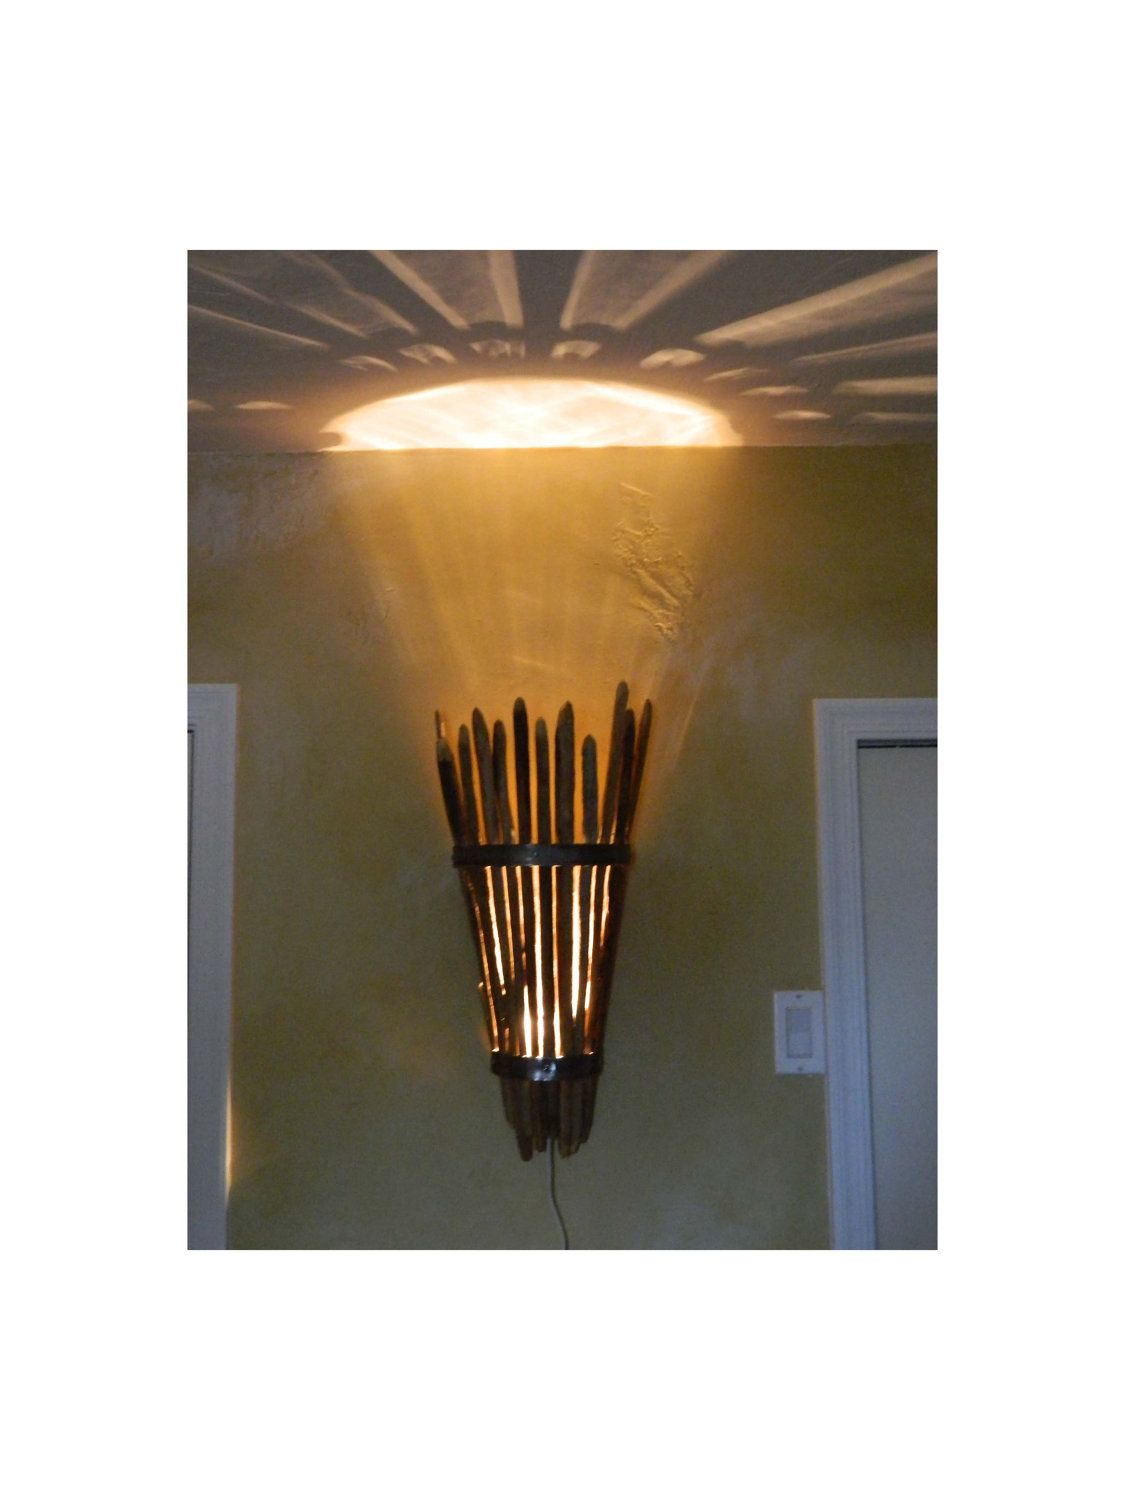 Home Decor Sconce Saguaro Cactus Rib Light Science Etsy Sconce Lighting Wall Sconces Bedroom Wall Sconces